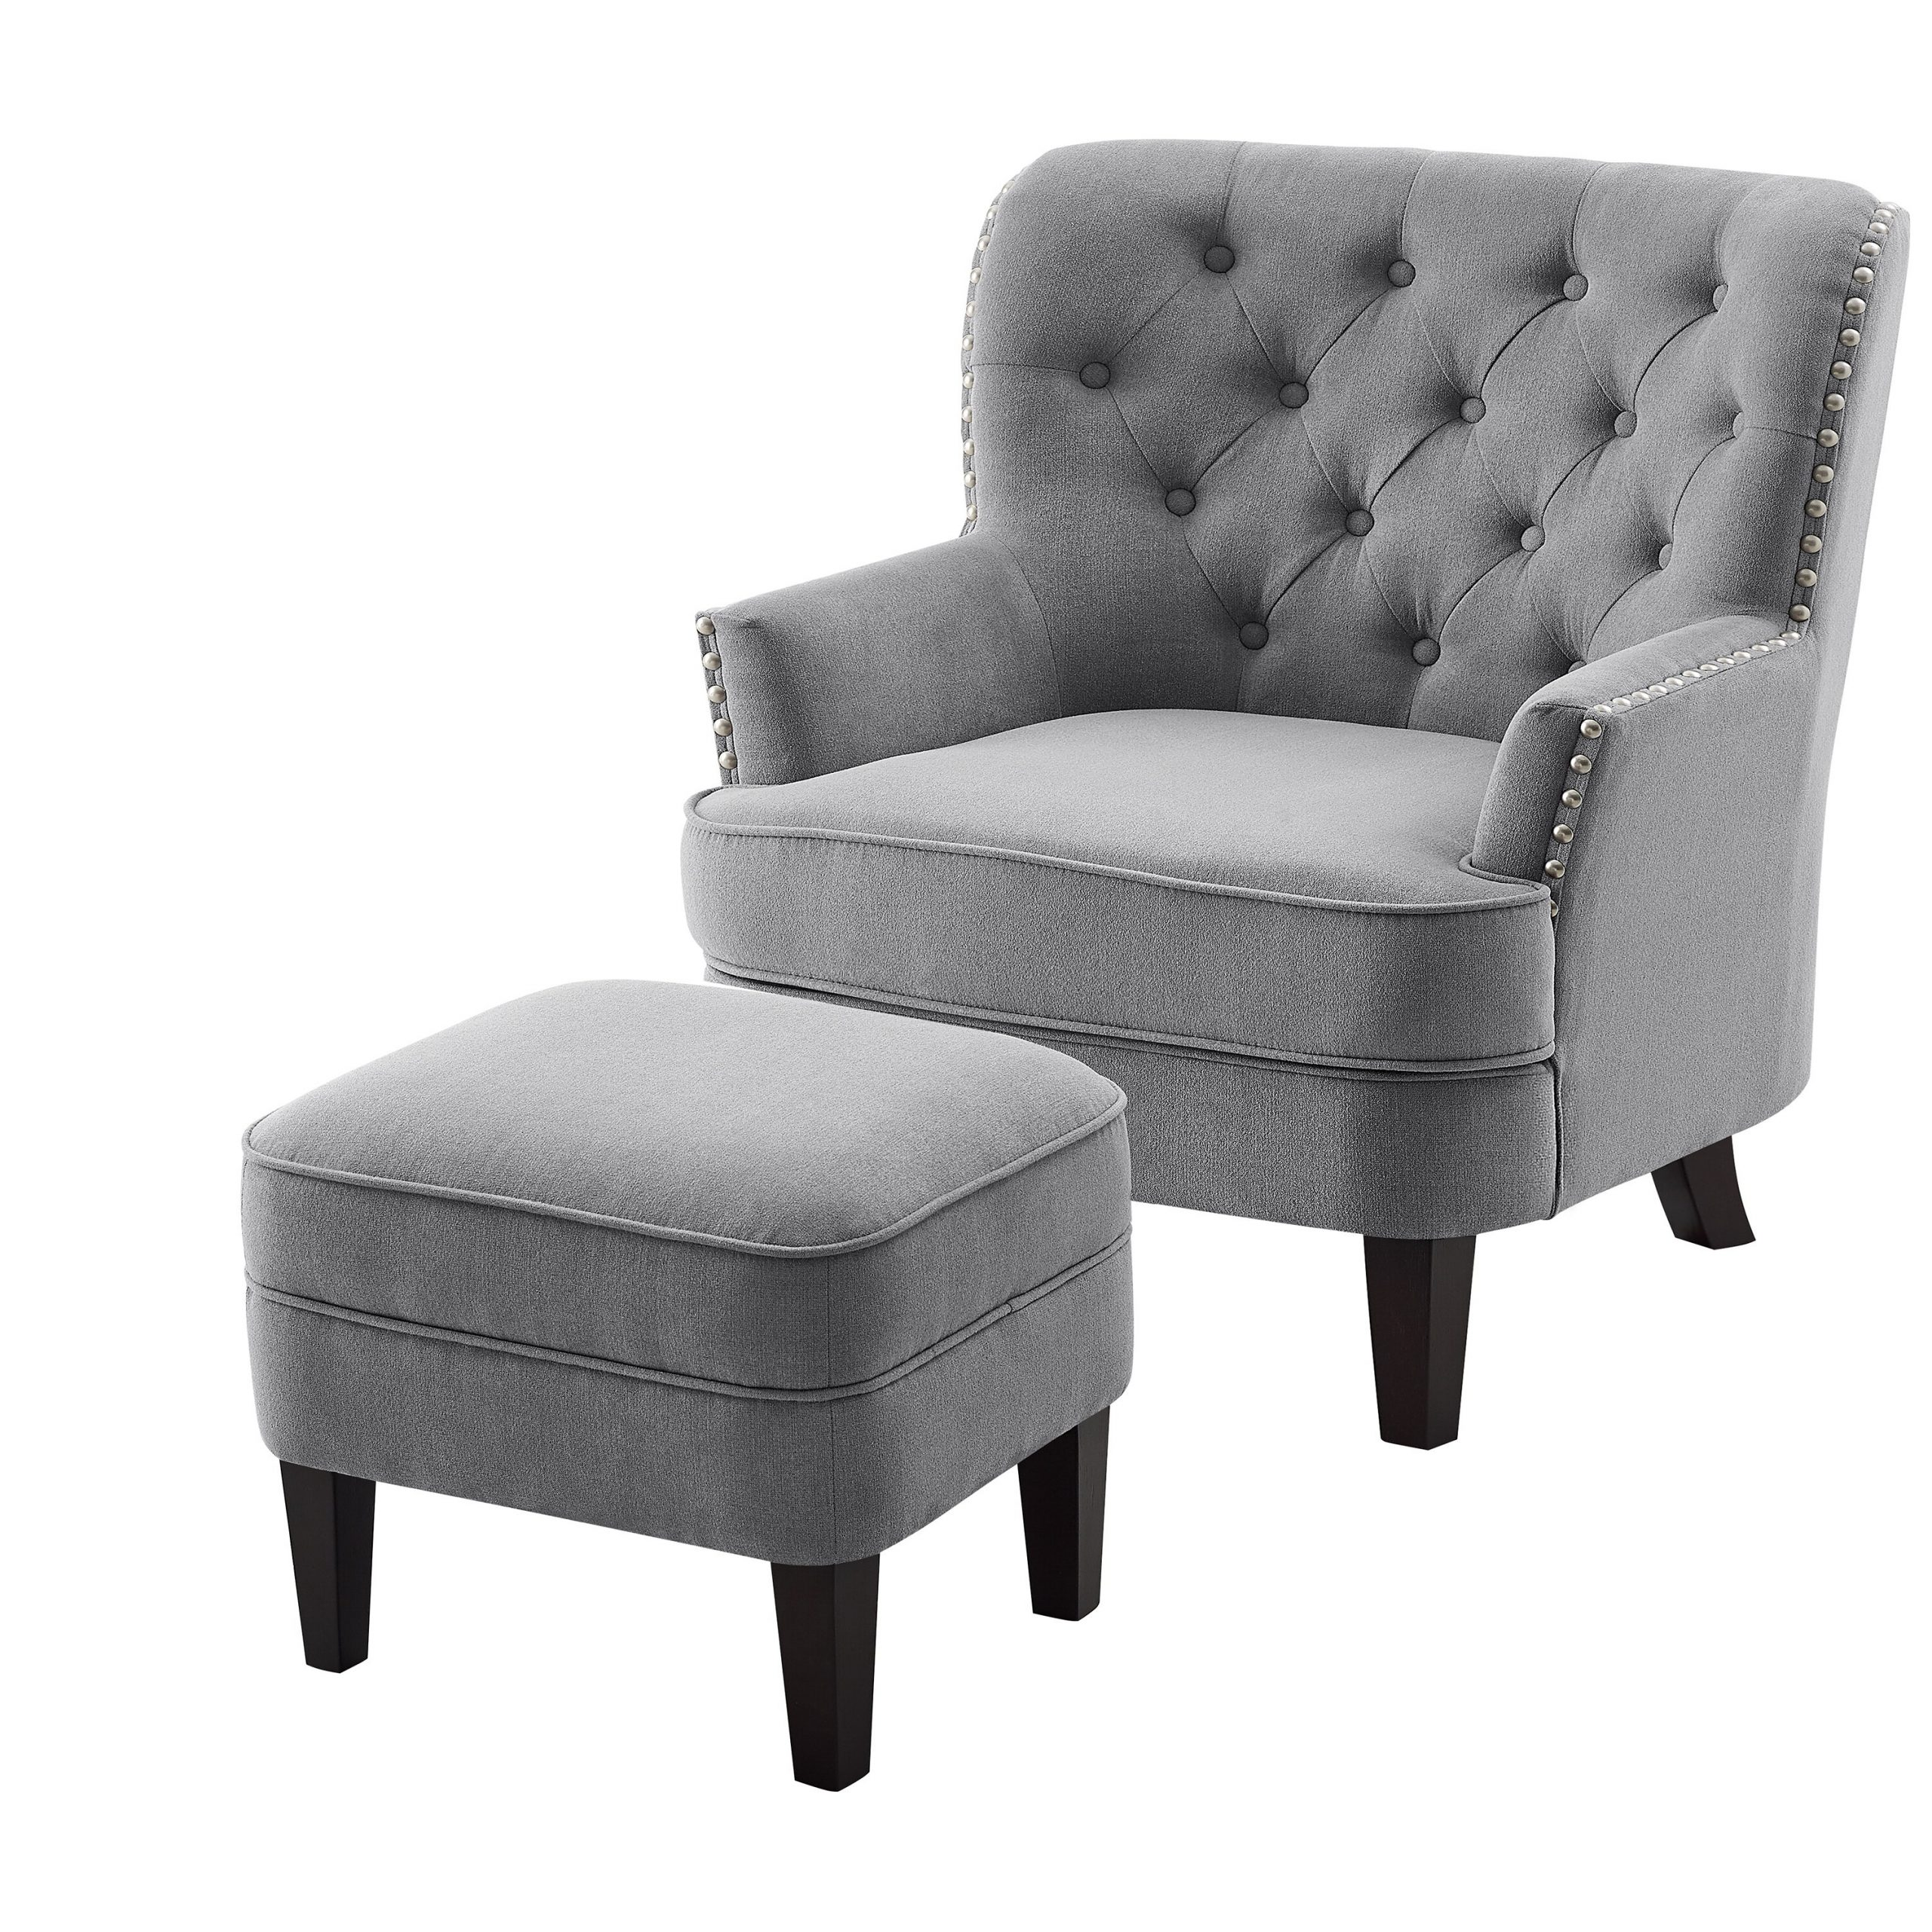 Dark Gray Linen Accent Chairs You'll Love In (View 9 of 20)